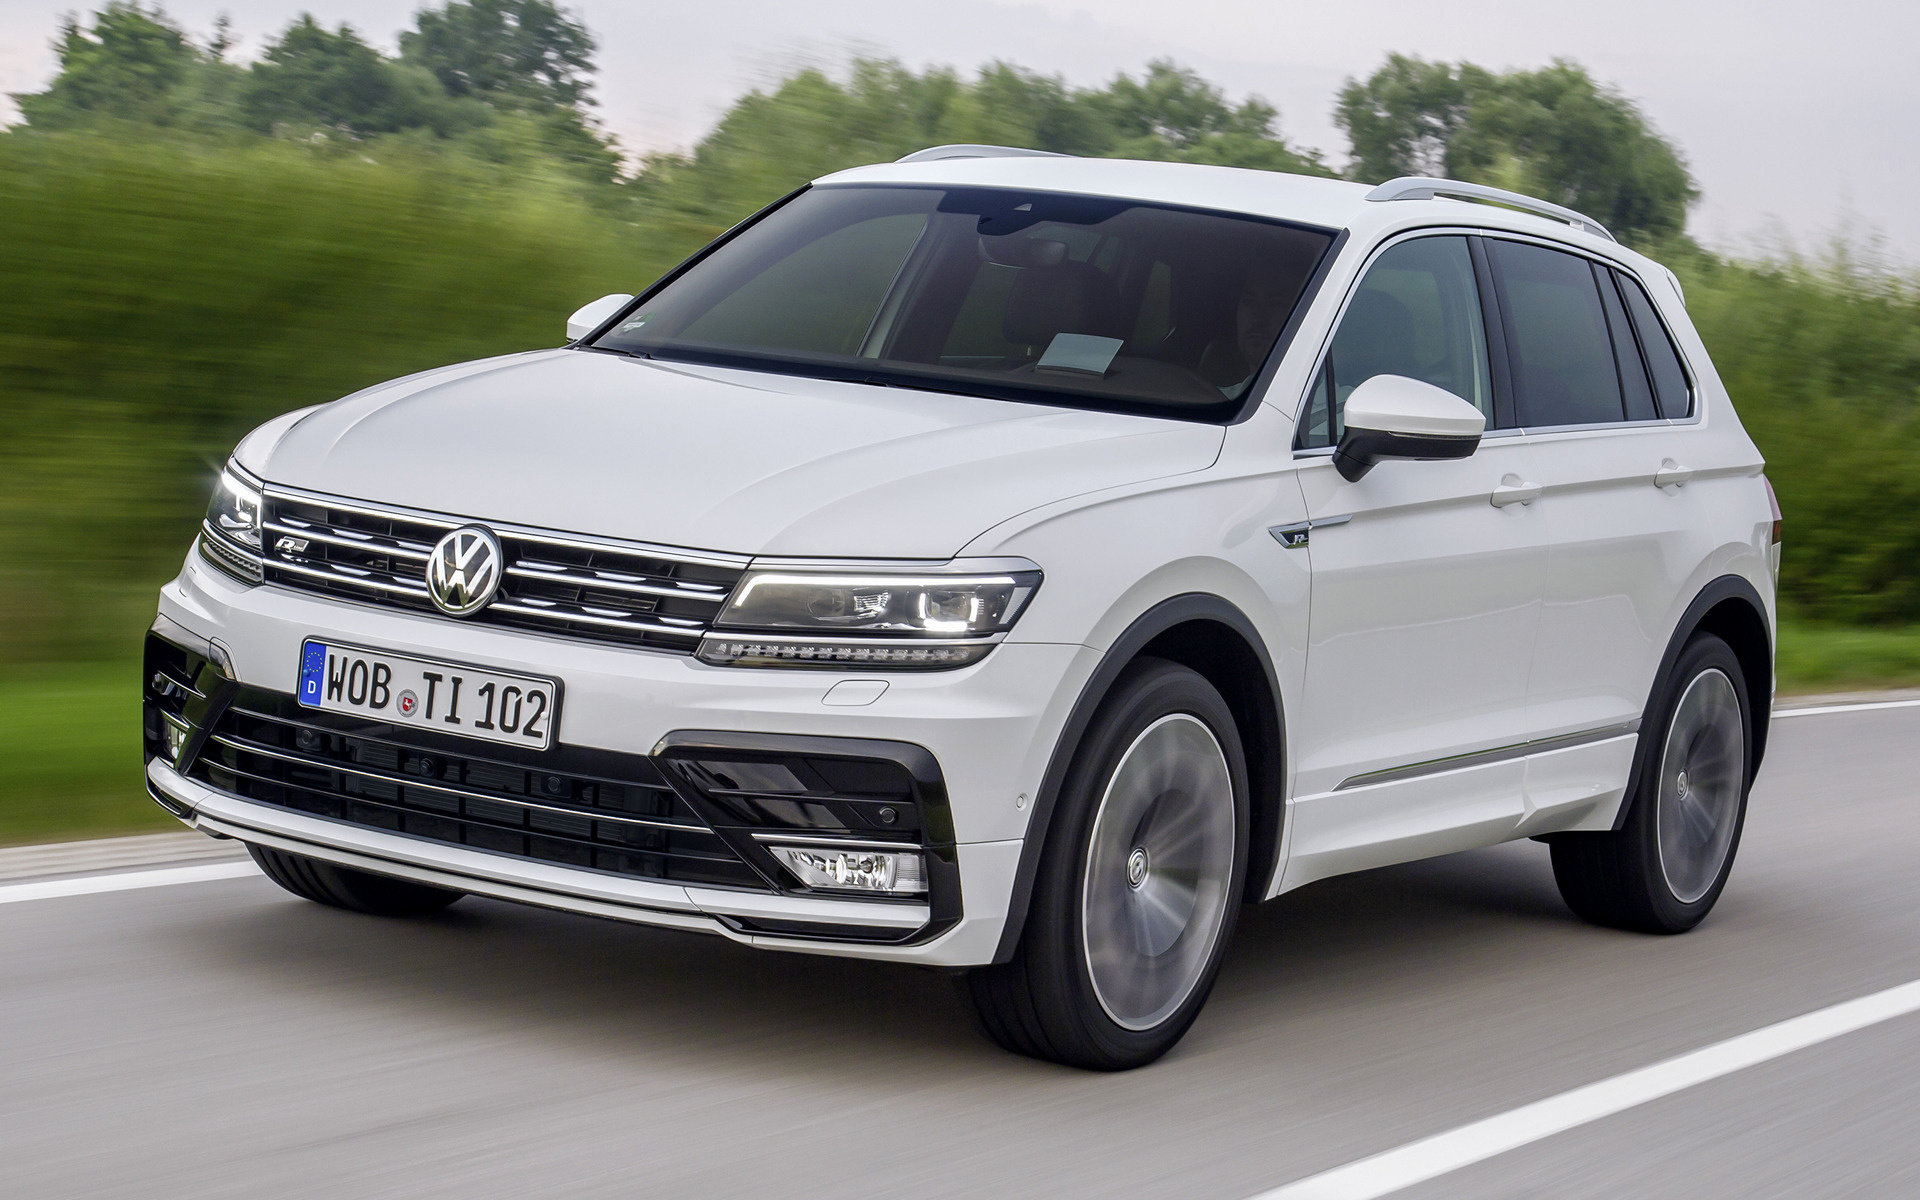 2016 volkswagen tiguan r line wallpapers and hd images. Black Bedroom Furniture Sets. Home Design Ideas